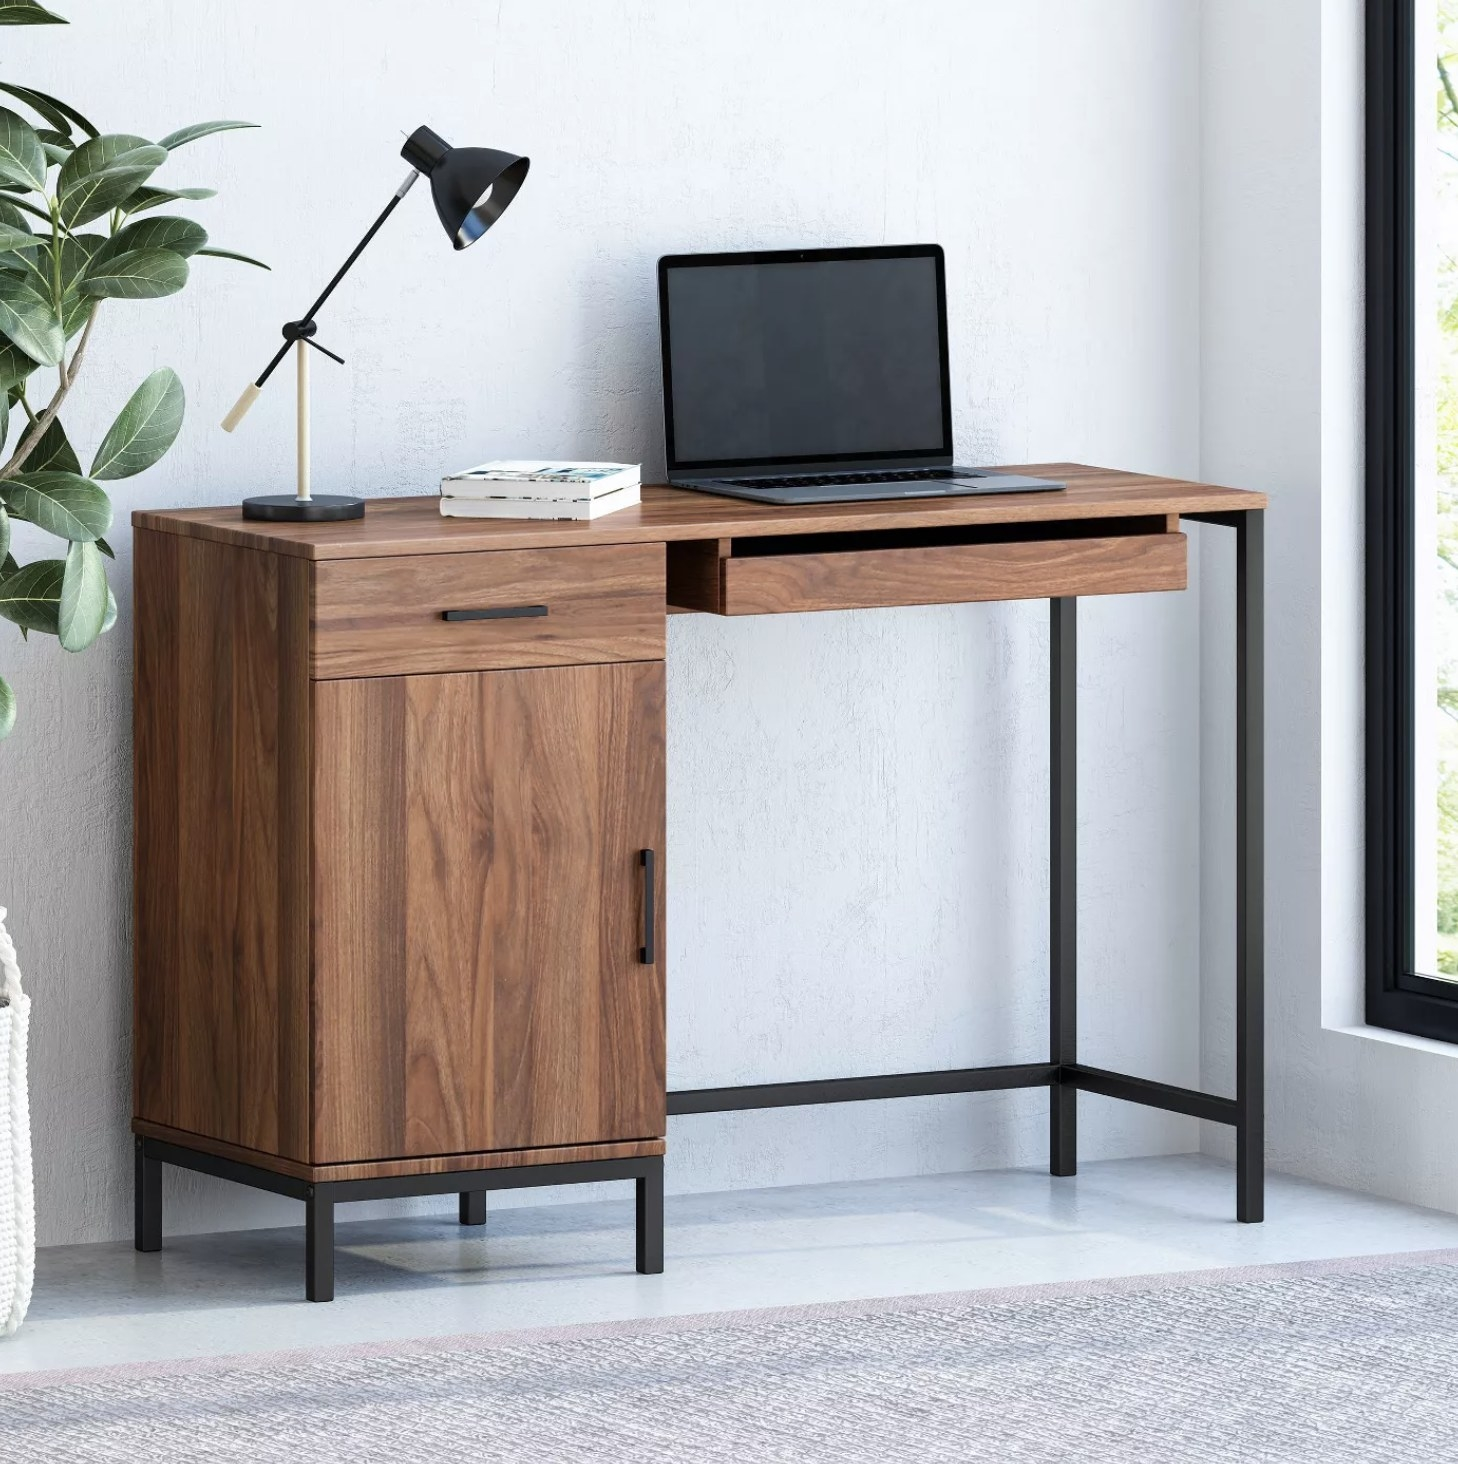 A brown work desk with a side cabinet and two drawers